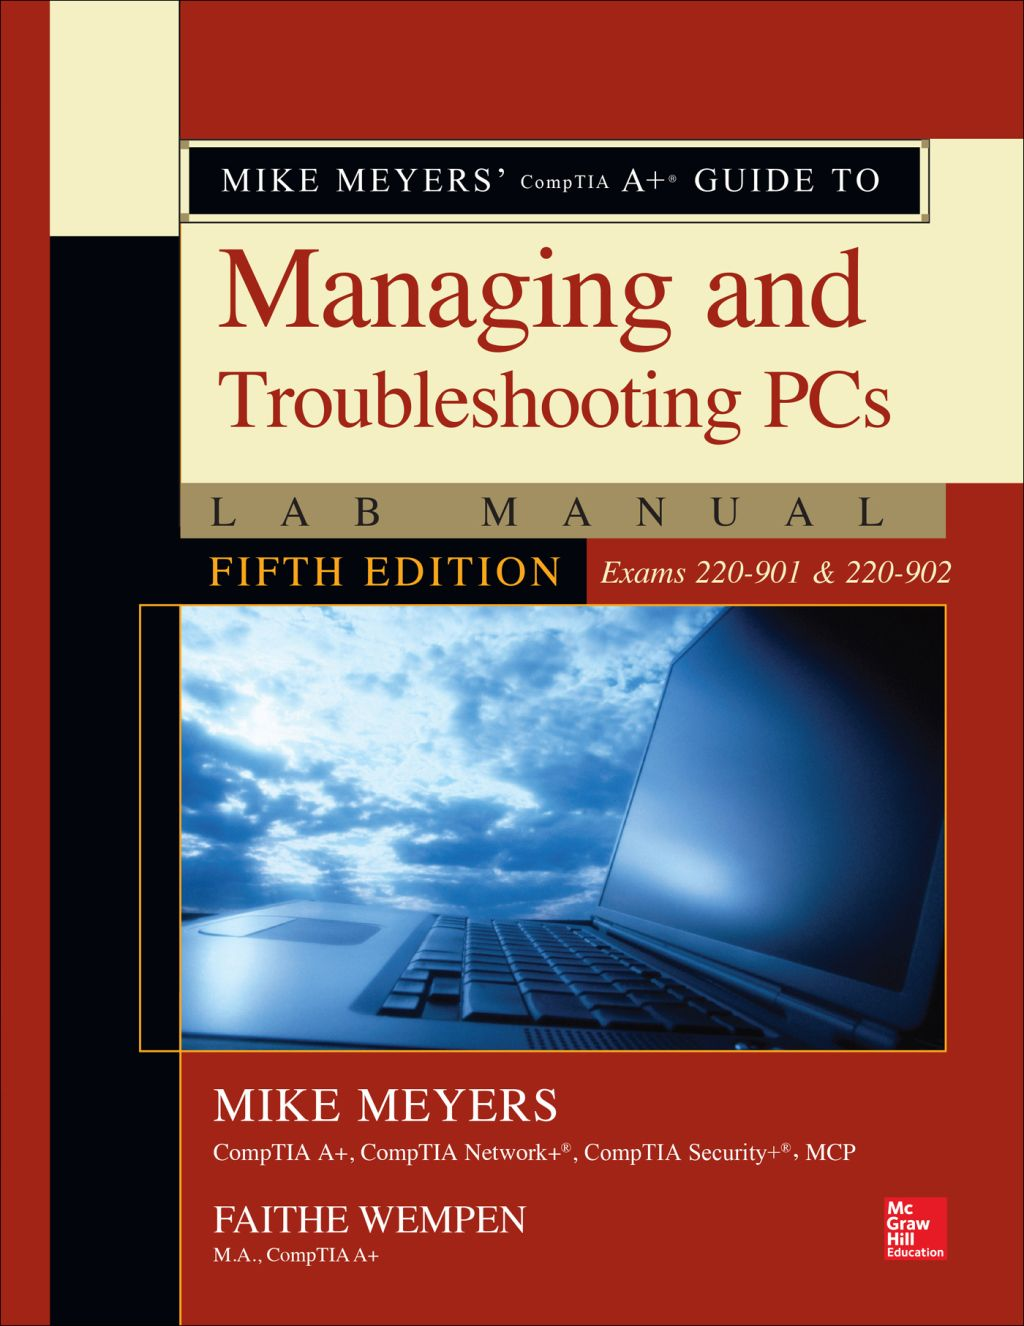 Mike Meyers' CompTIA A+ Guide to Managing and